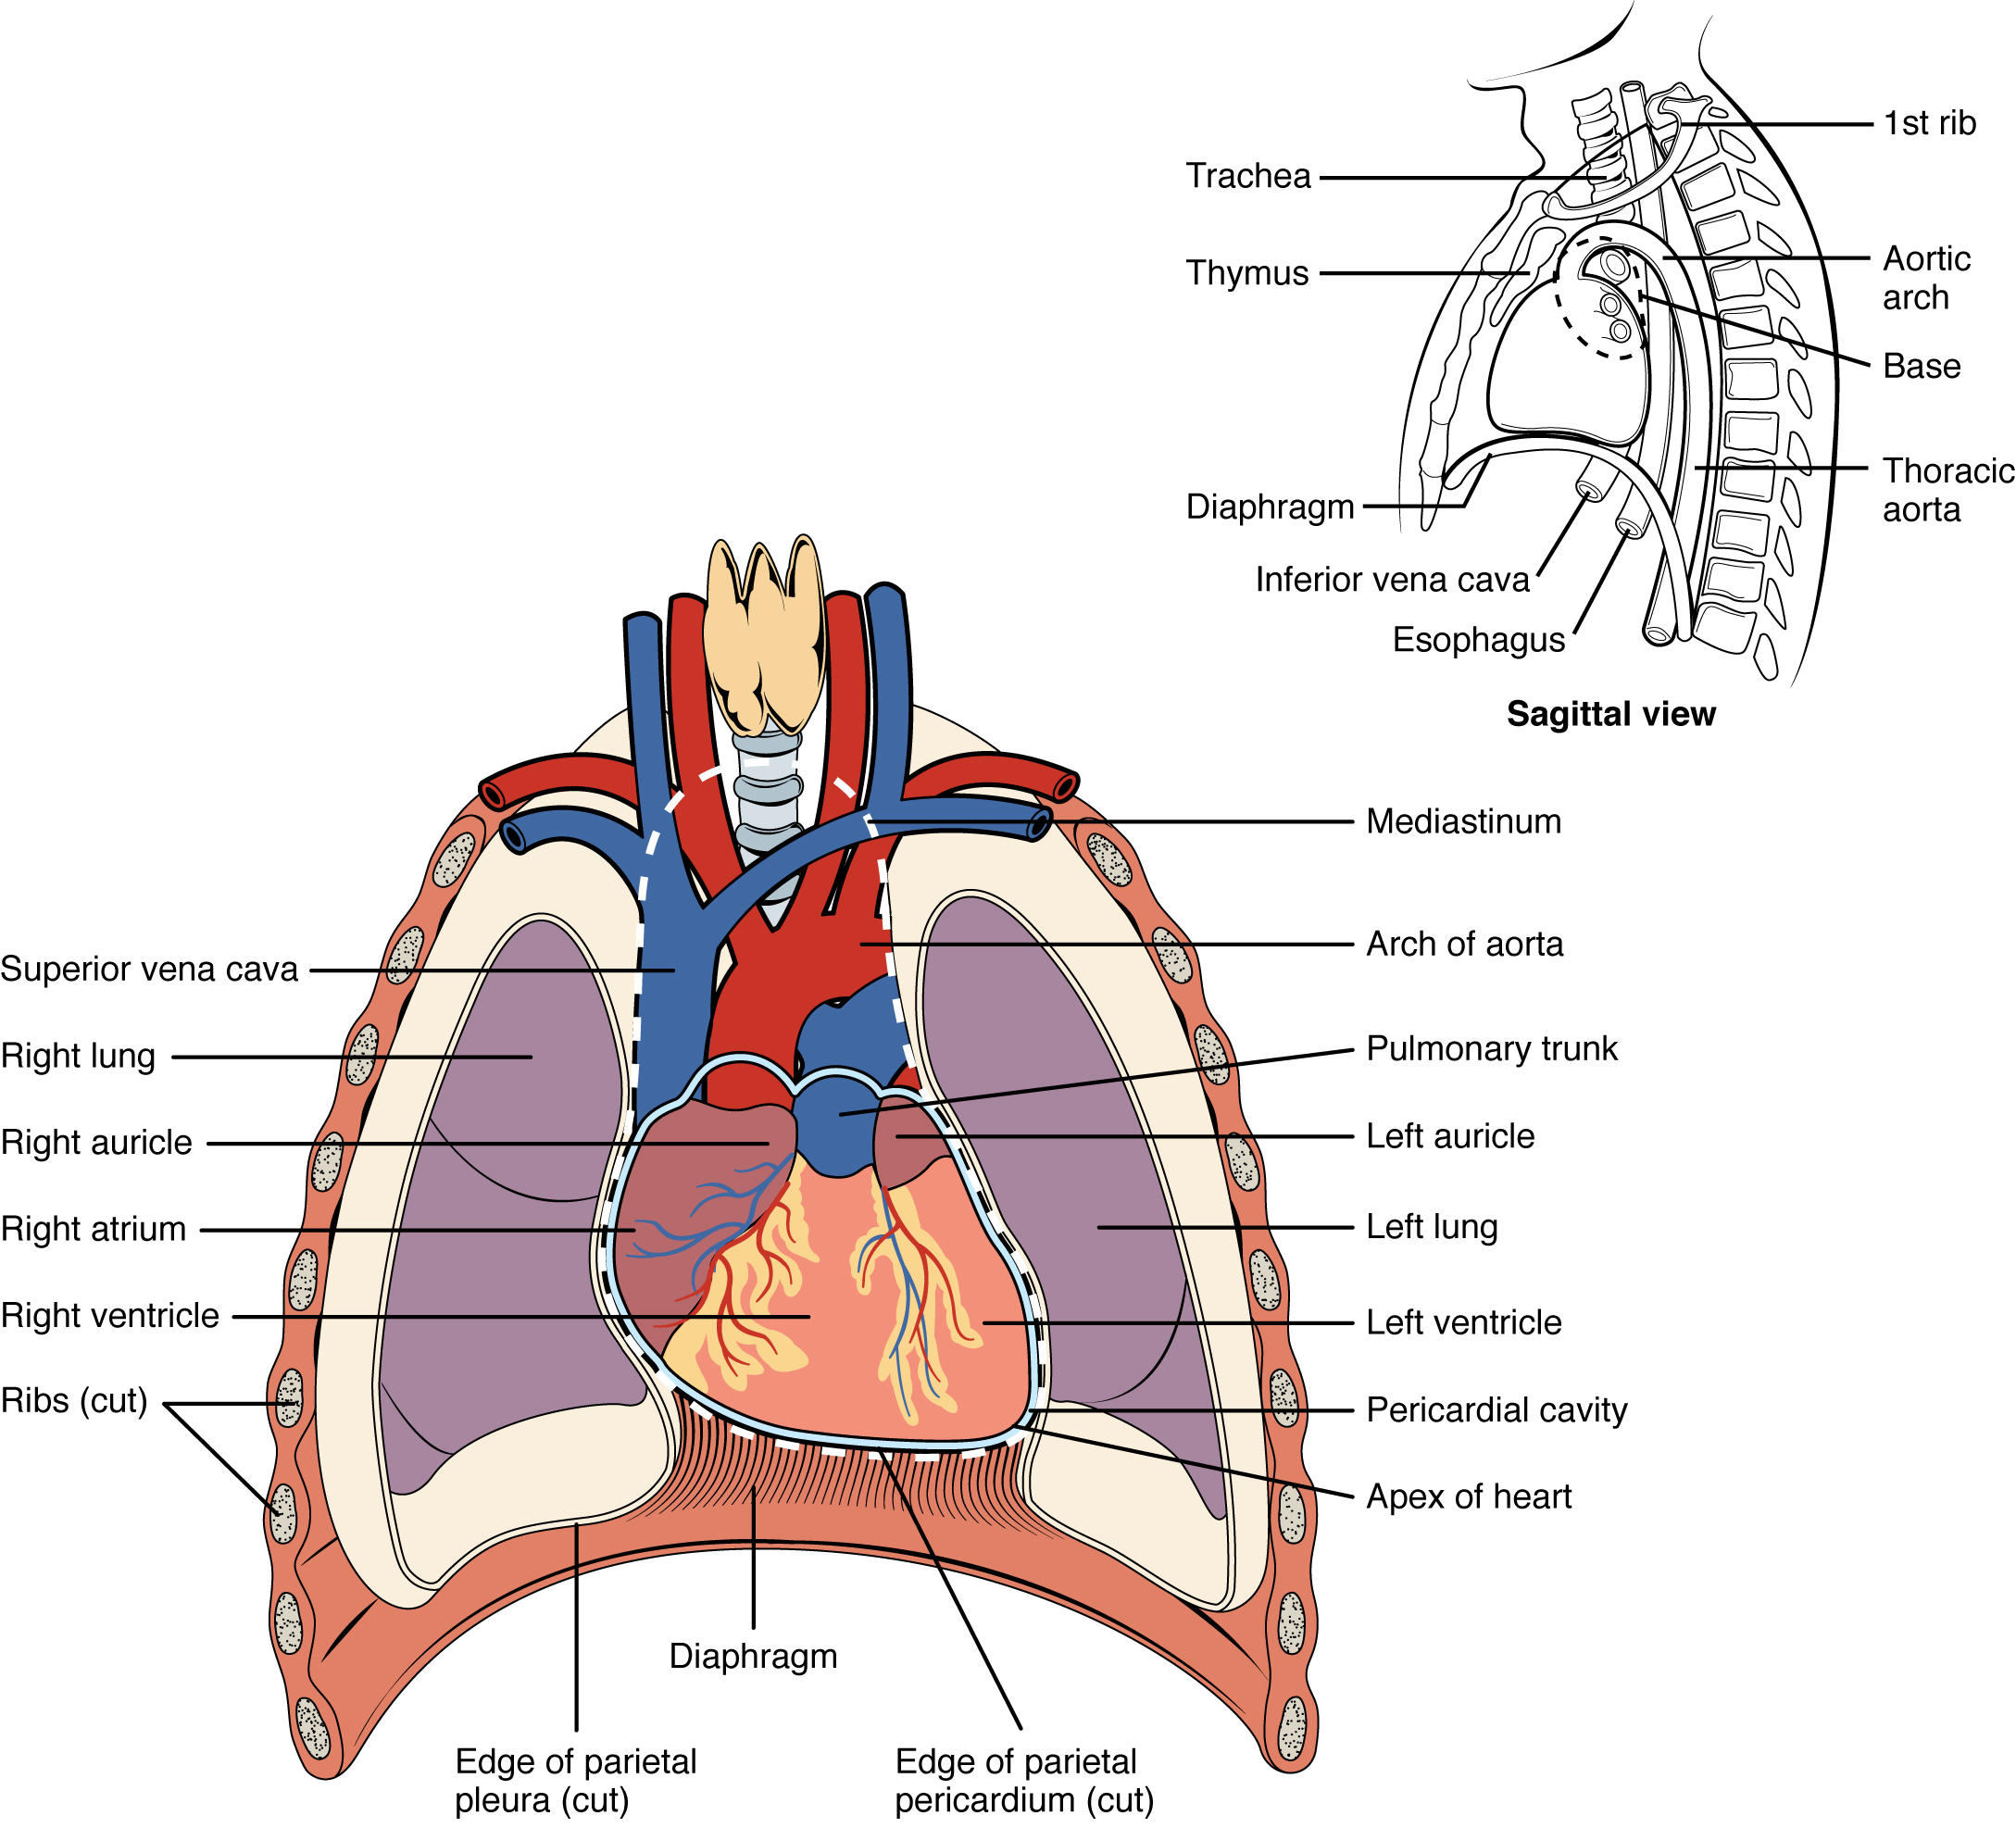 heart anatomy size location coverings and layers anatomy location of heart in the mediastinum